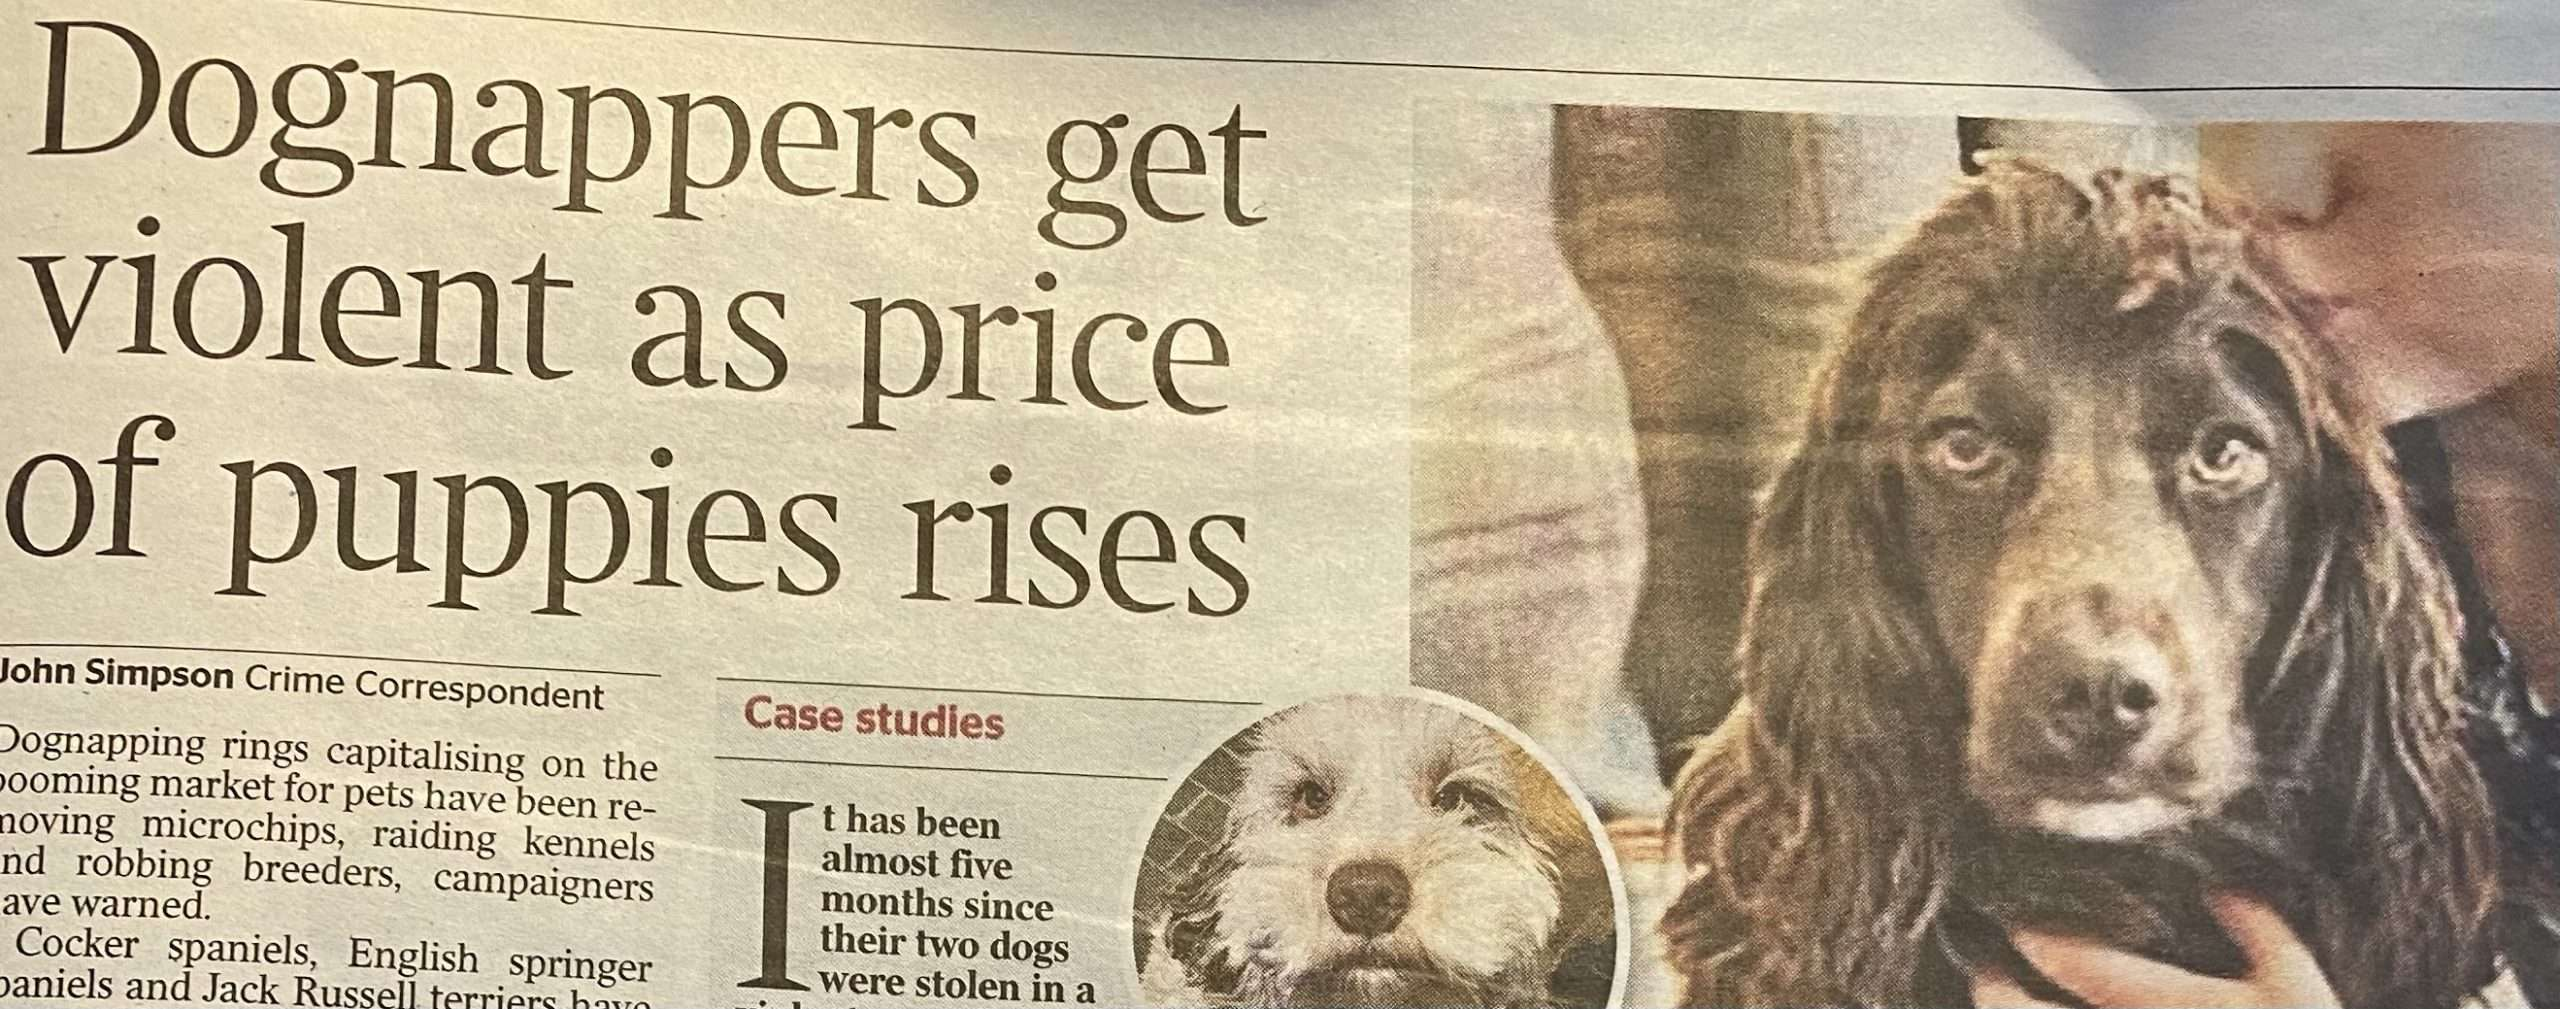 Dognappers get violent as price of puppies rises.